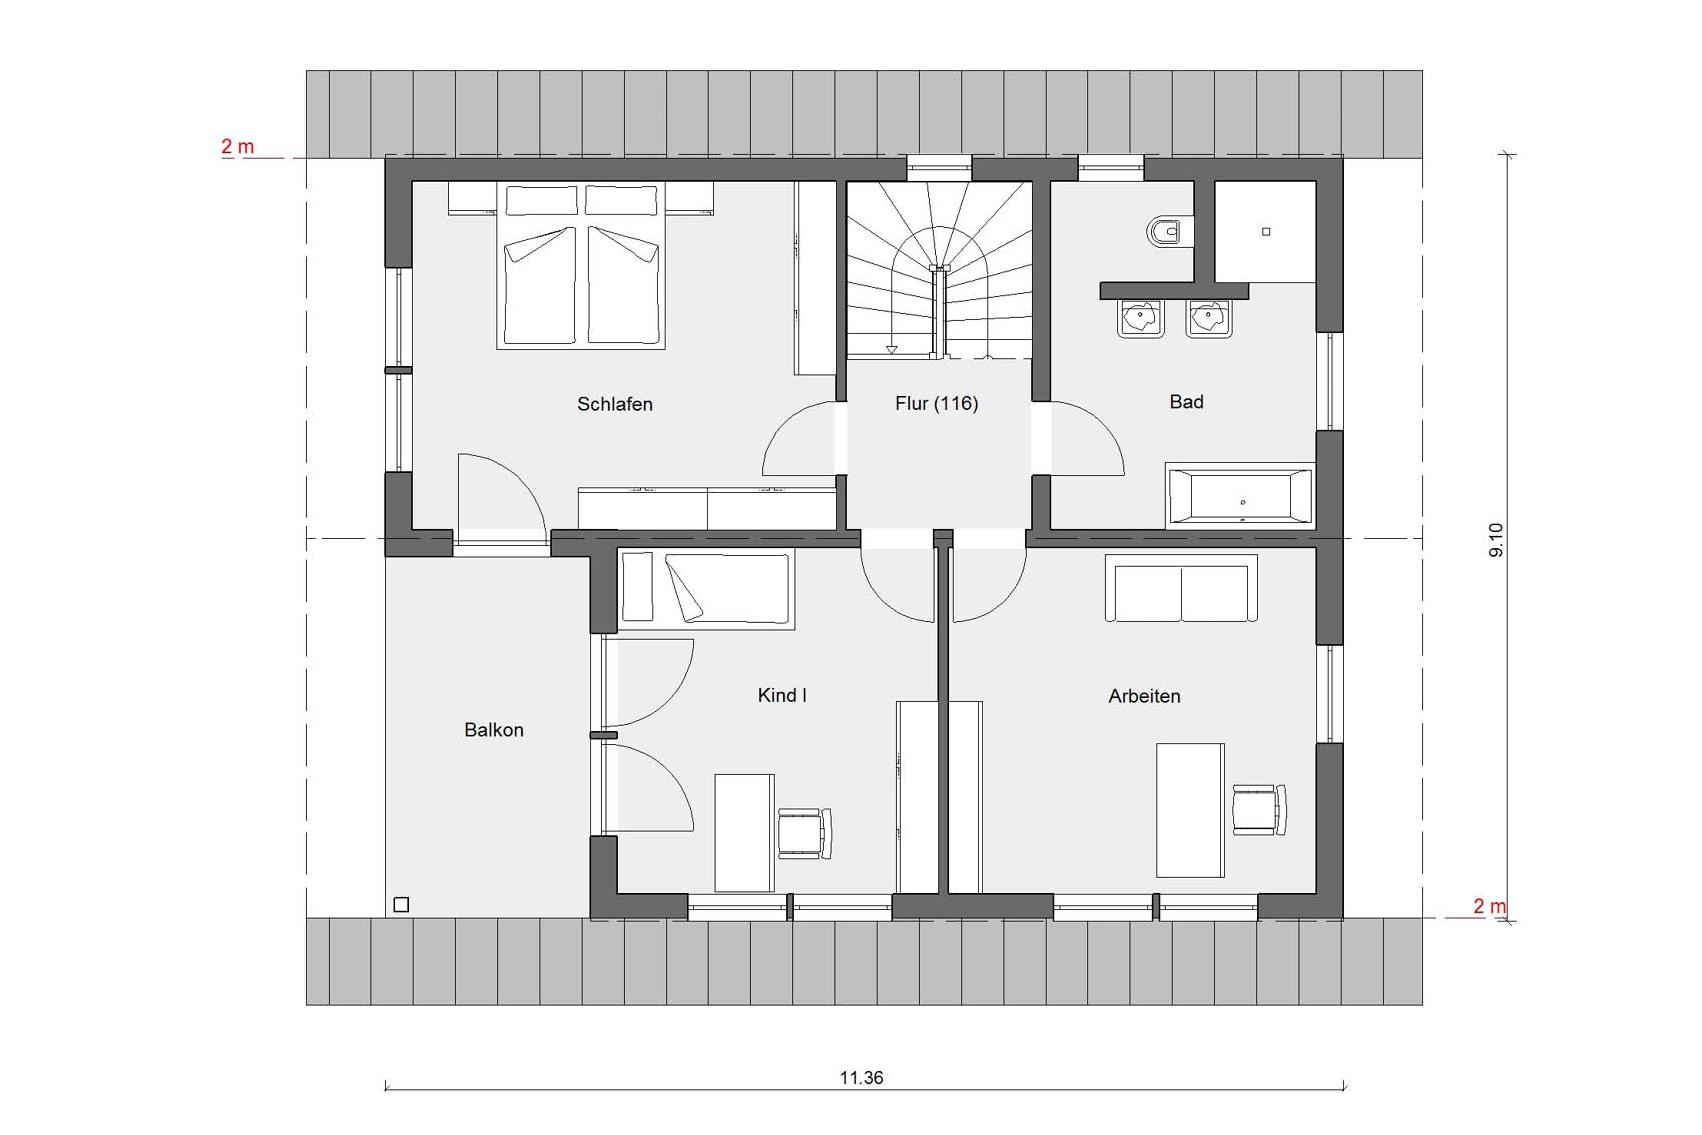 Floor plan attic E 15-153.2 Detached house with double garage